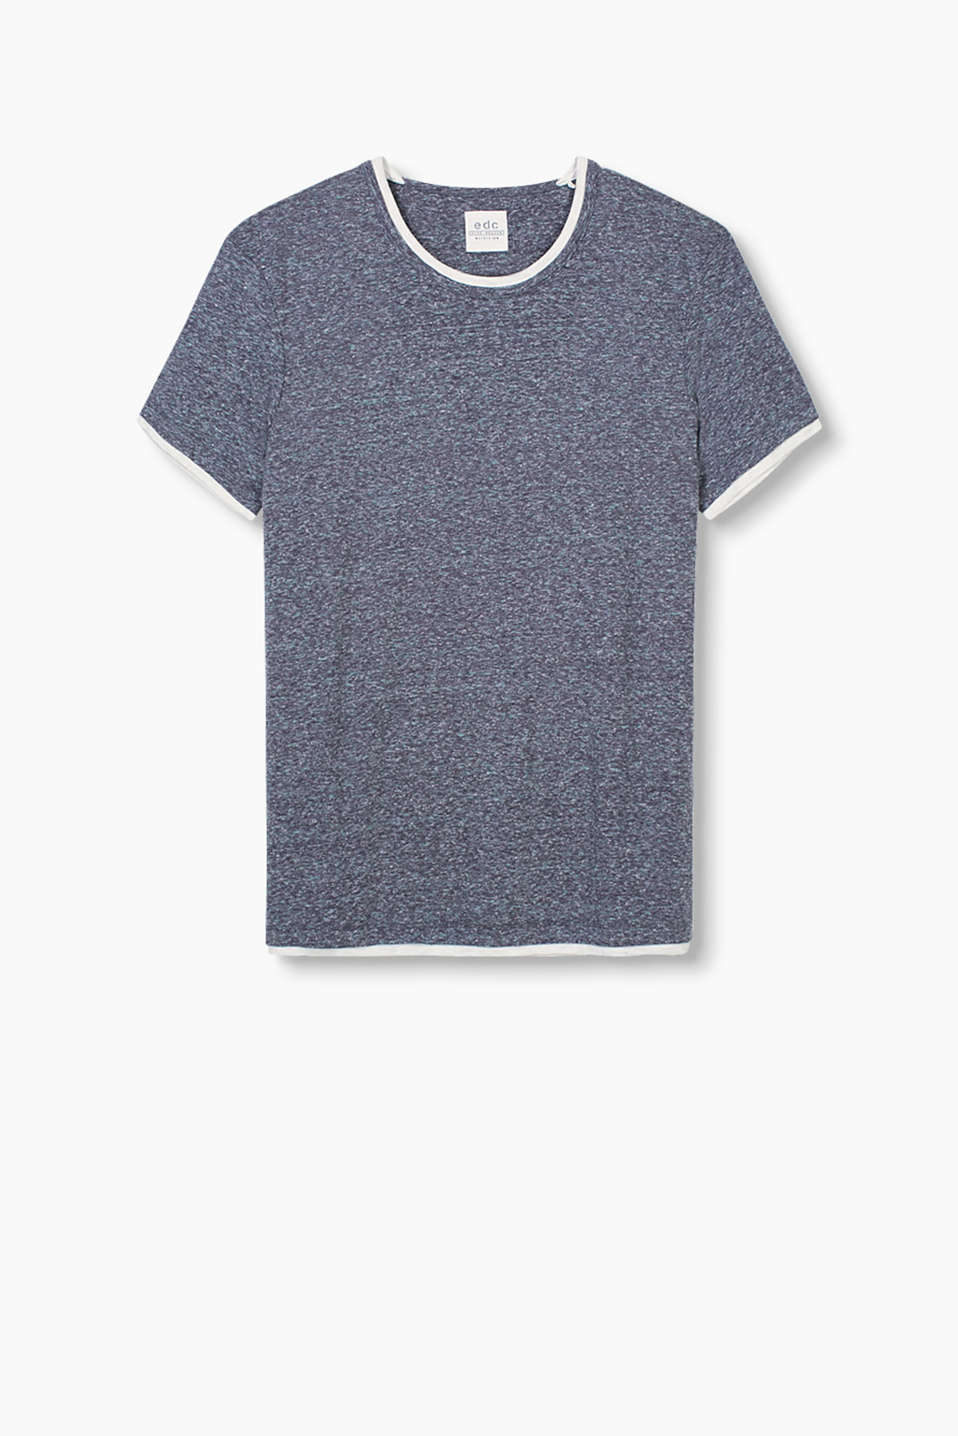 Melange T-shirt made of 100% cotton in a 2-in-1 design